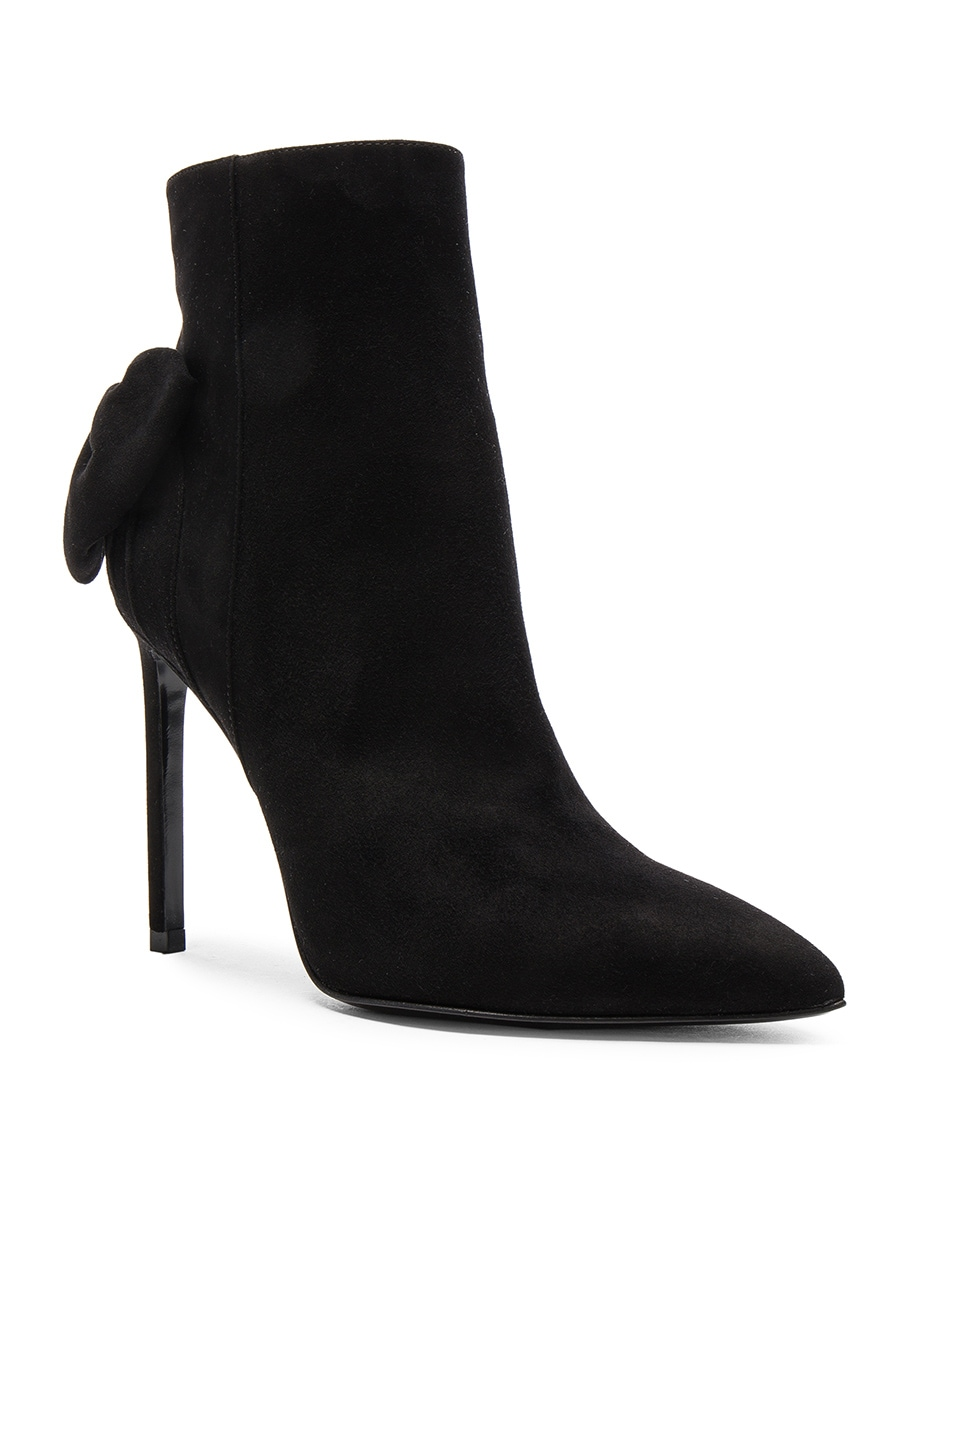 Image 2 of Saint Laurent Paris Skinny Bow Suede Booties in Black